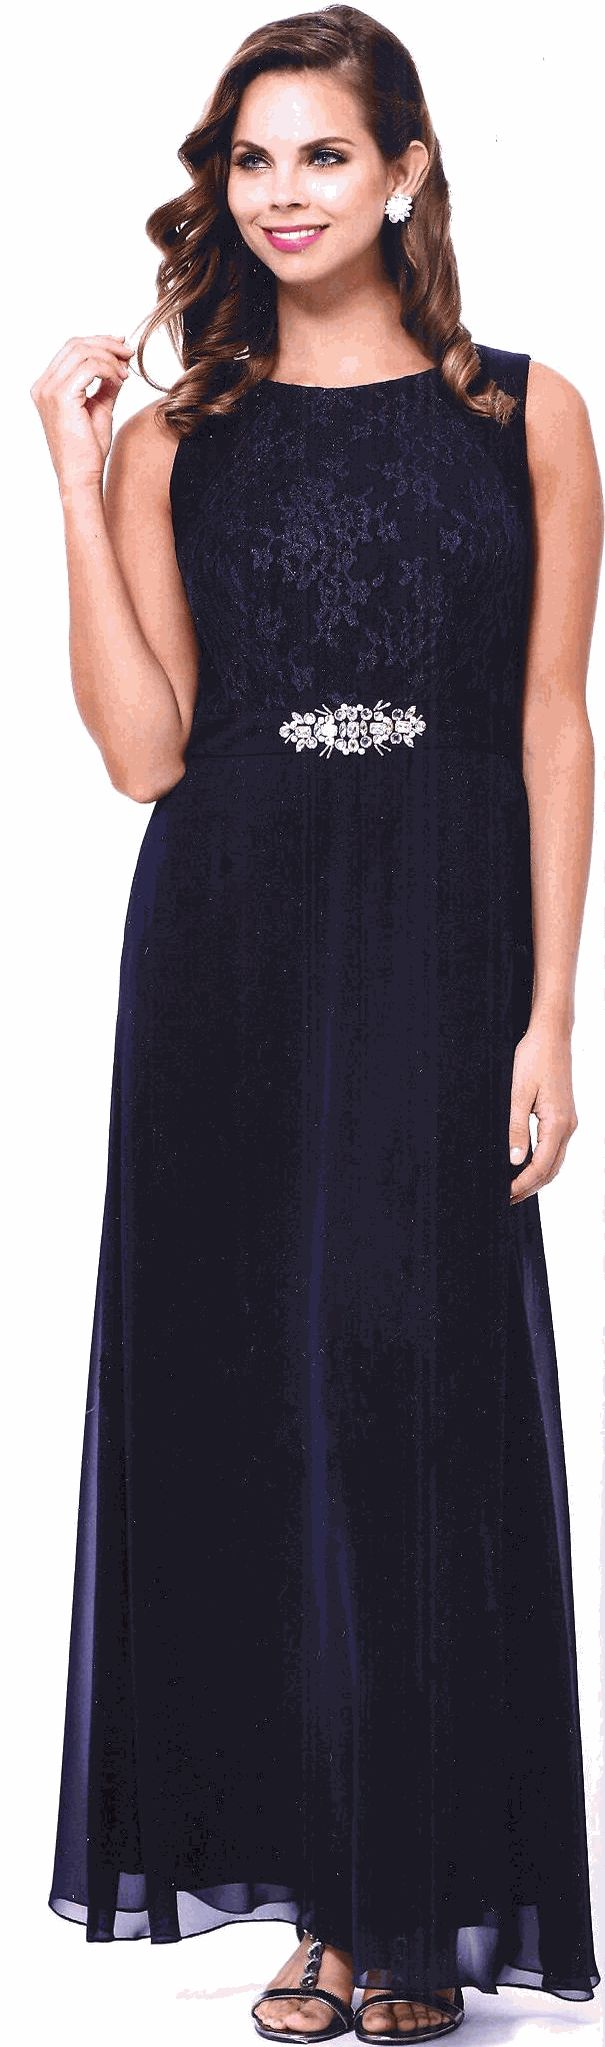 Mother Of The Bride Dresses Under $200 103